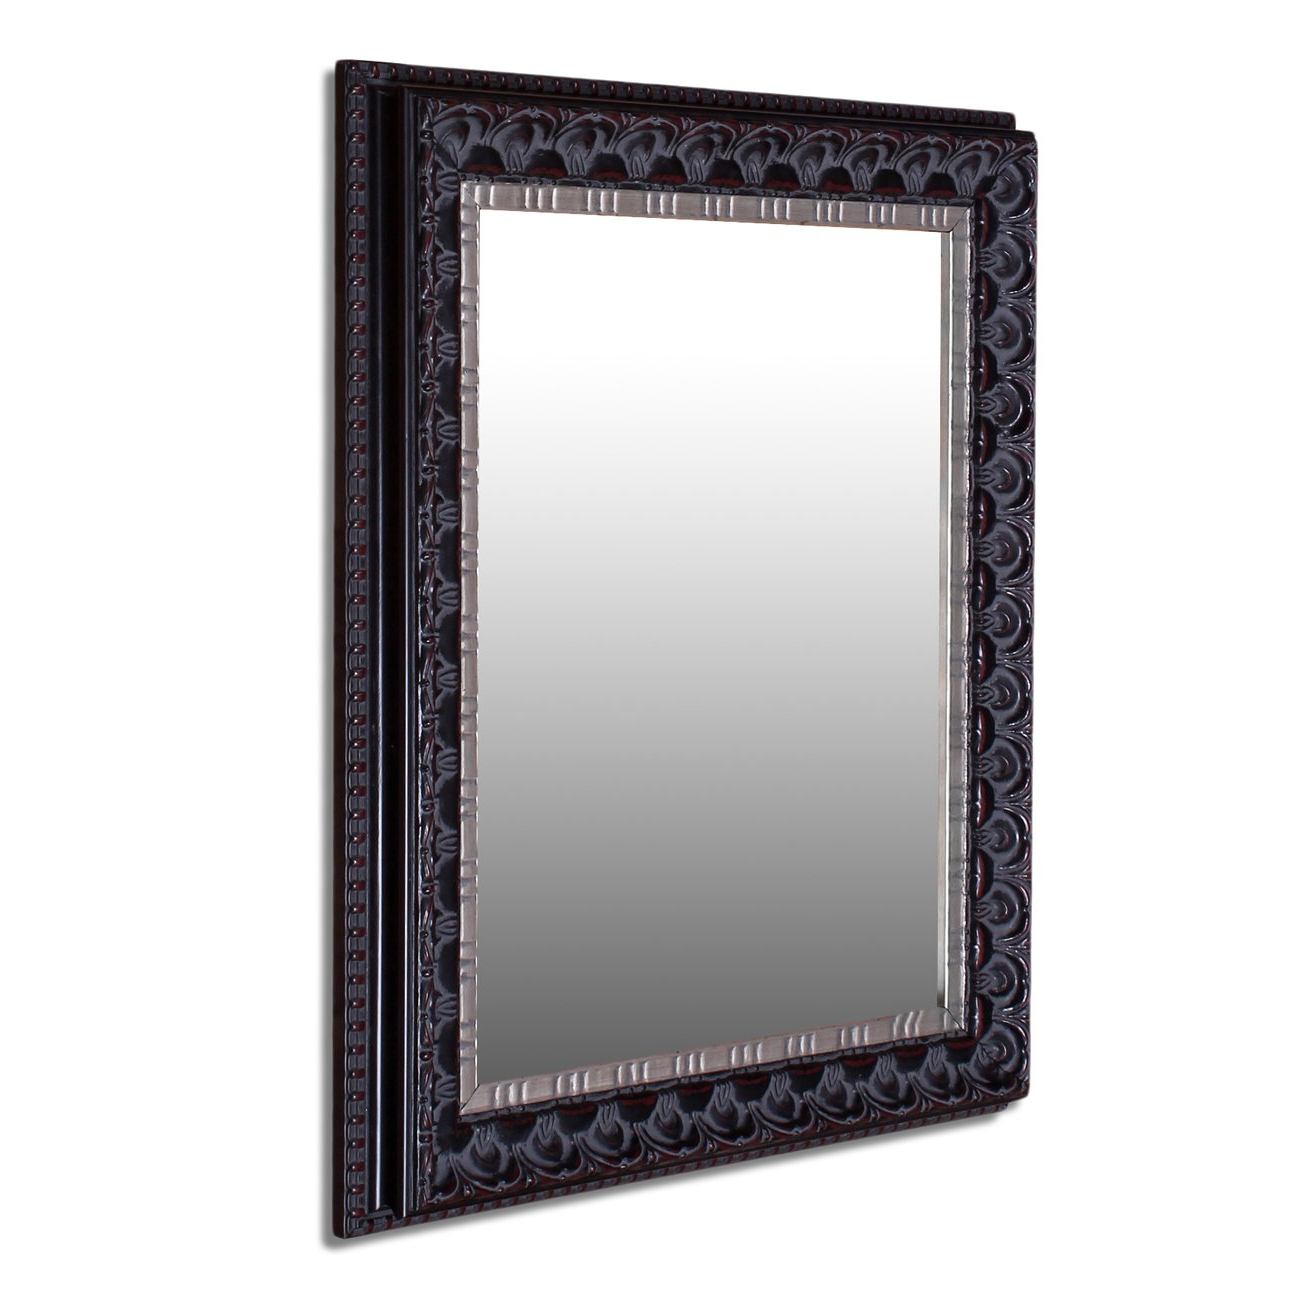 Art Street Floral Antique Decorative Wall Mirror Black Color 12 X18 Inch, Outer Size 16 X22 Inch Within Most Up To Date Black Decorative Wall Mirrors (View 3 of 20)